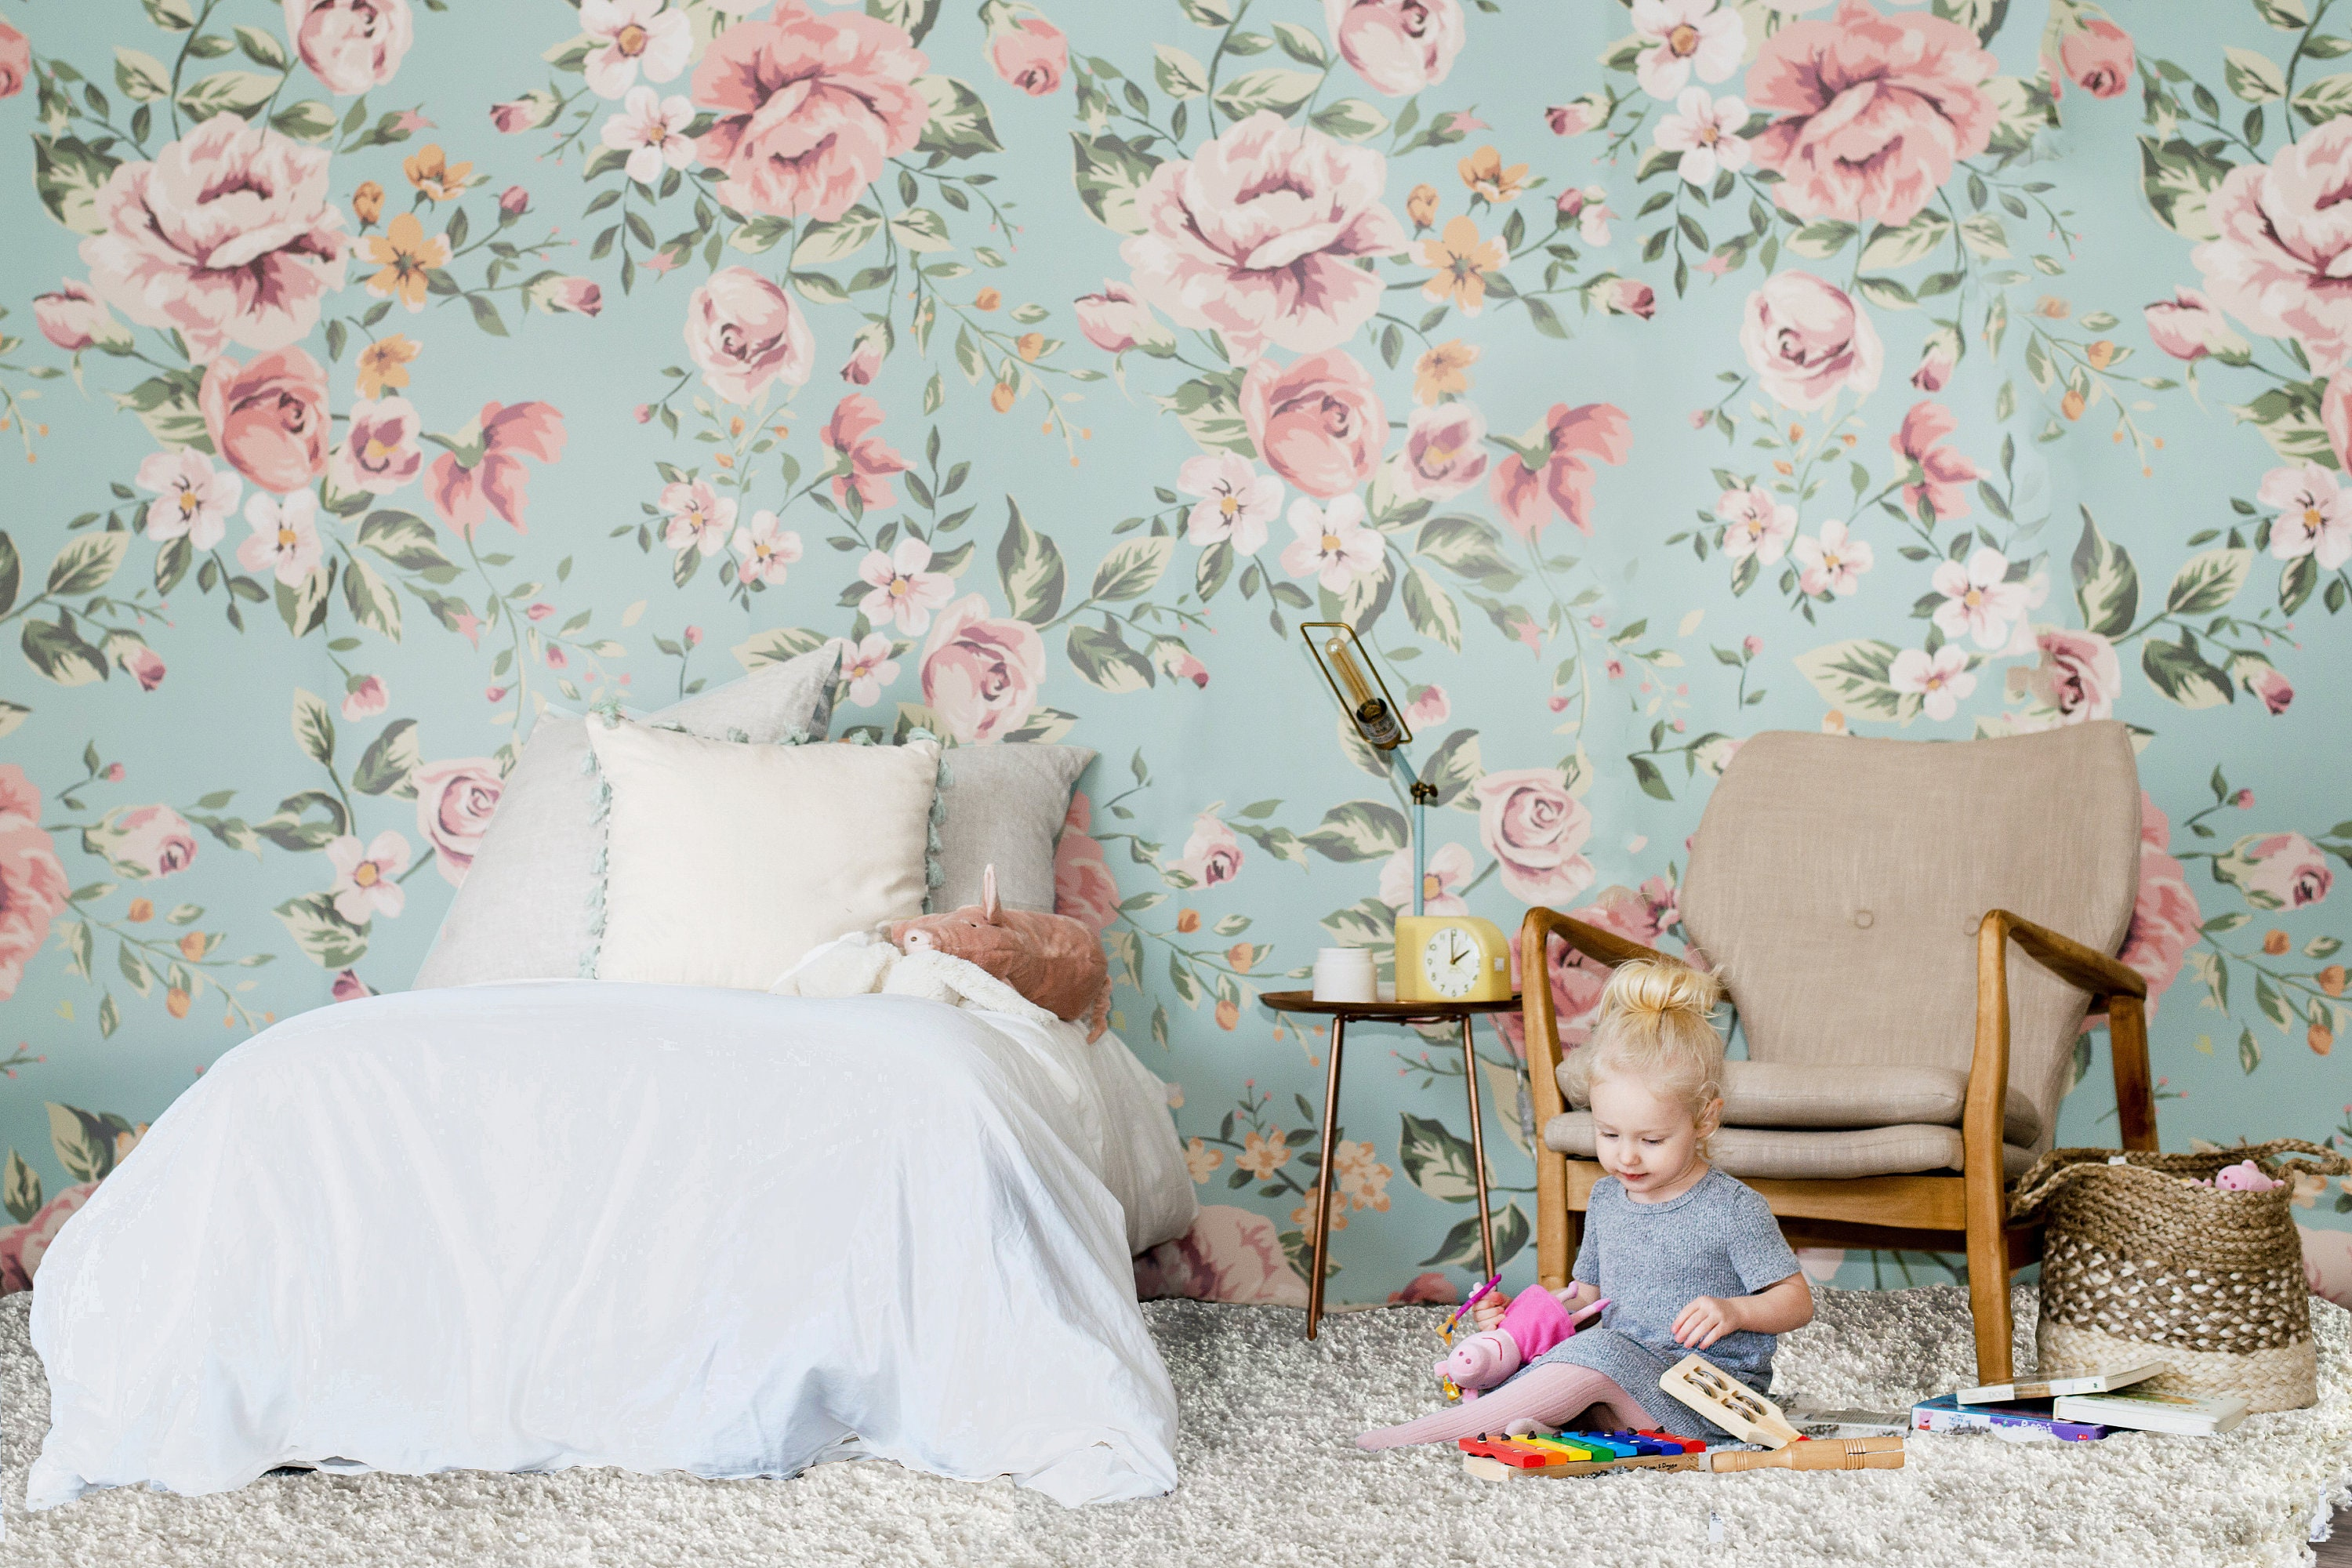 Cutesie Floral Mural Flower Pattern Wallpaper